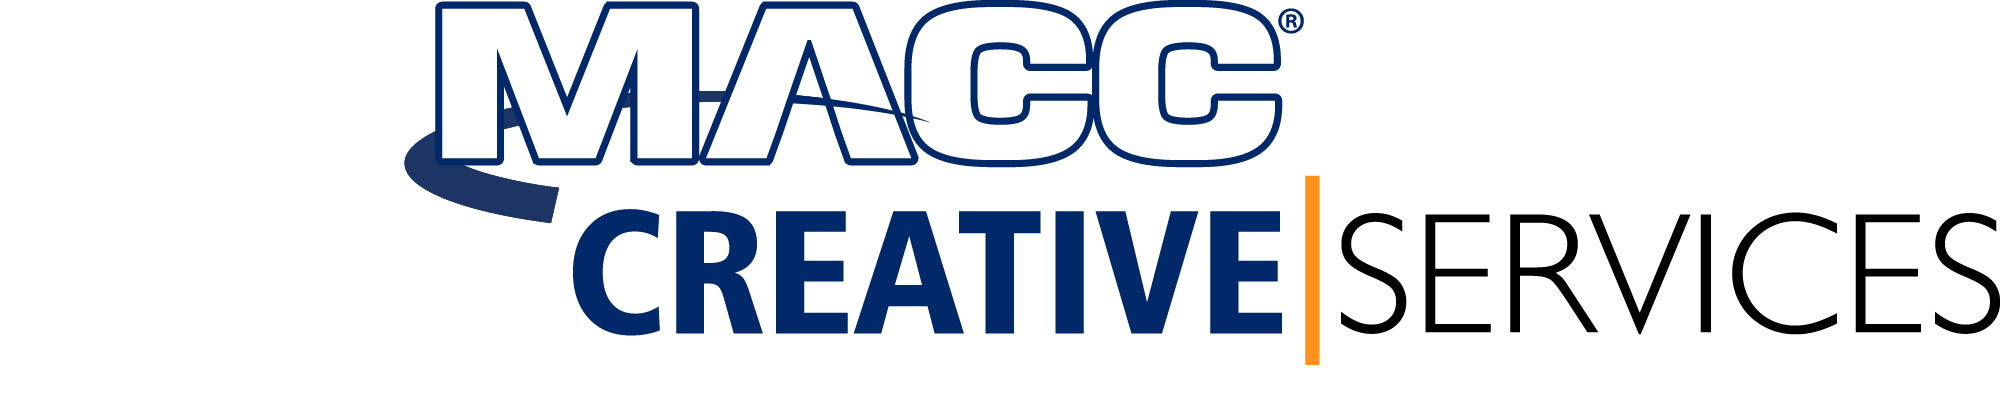 MACC Creative Services